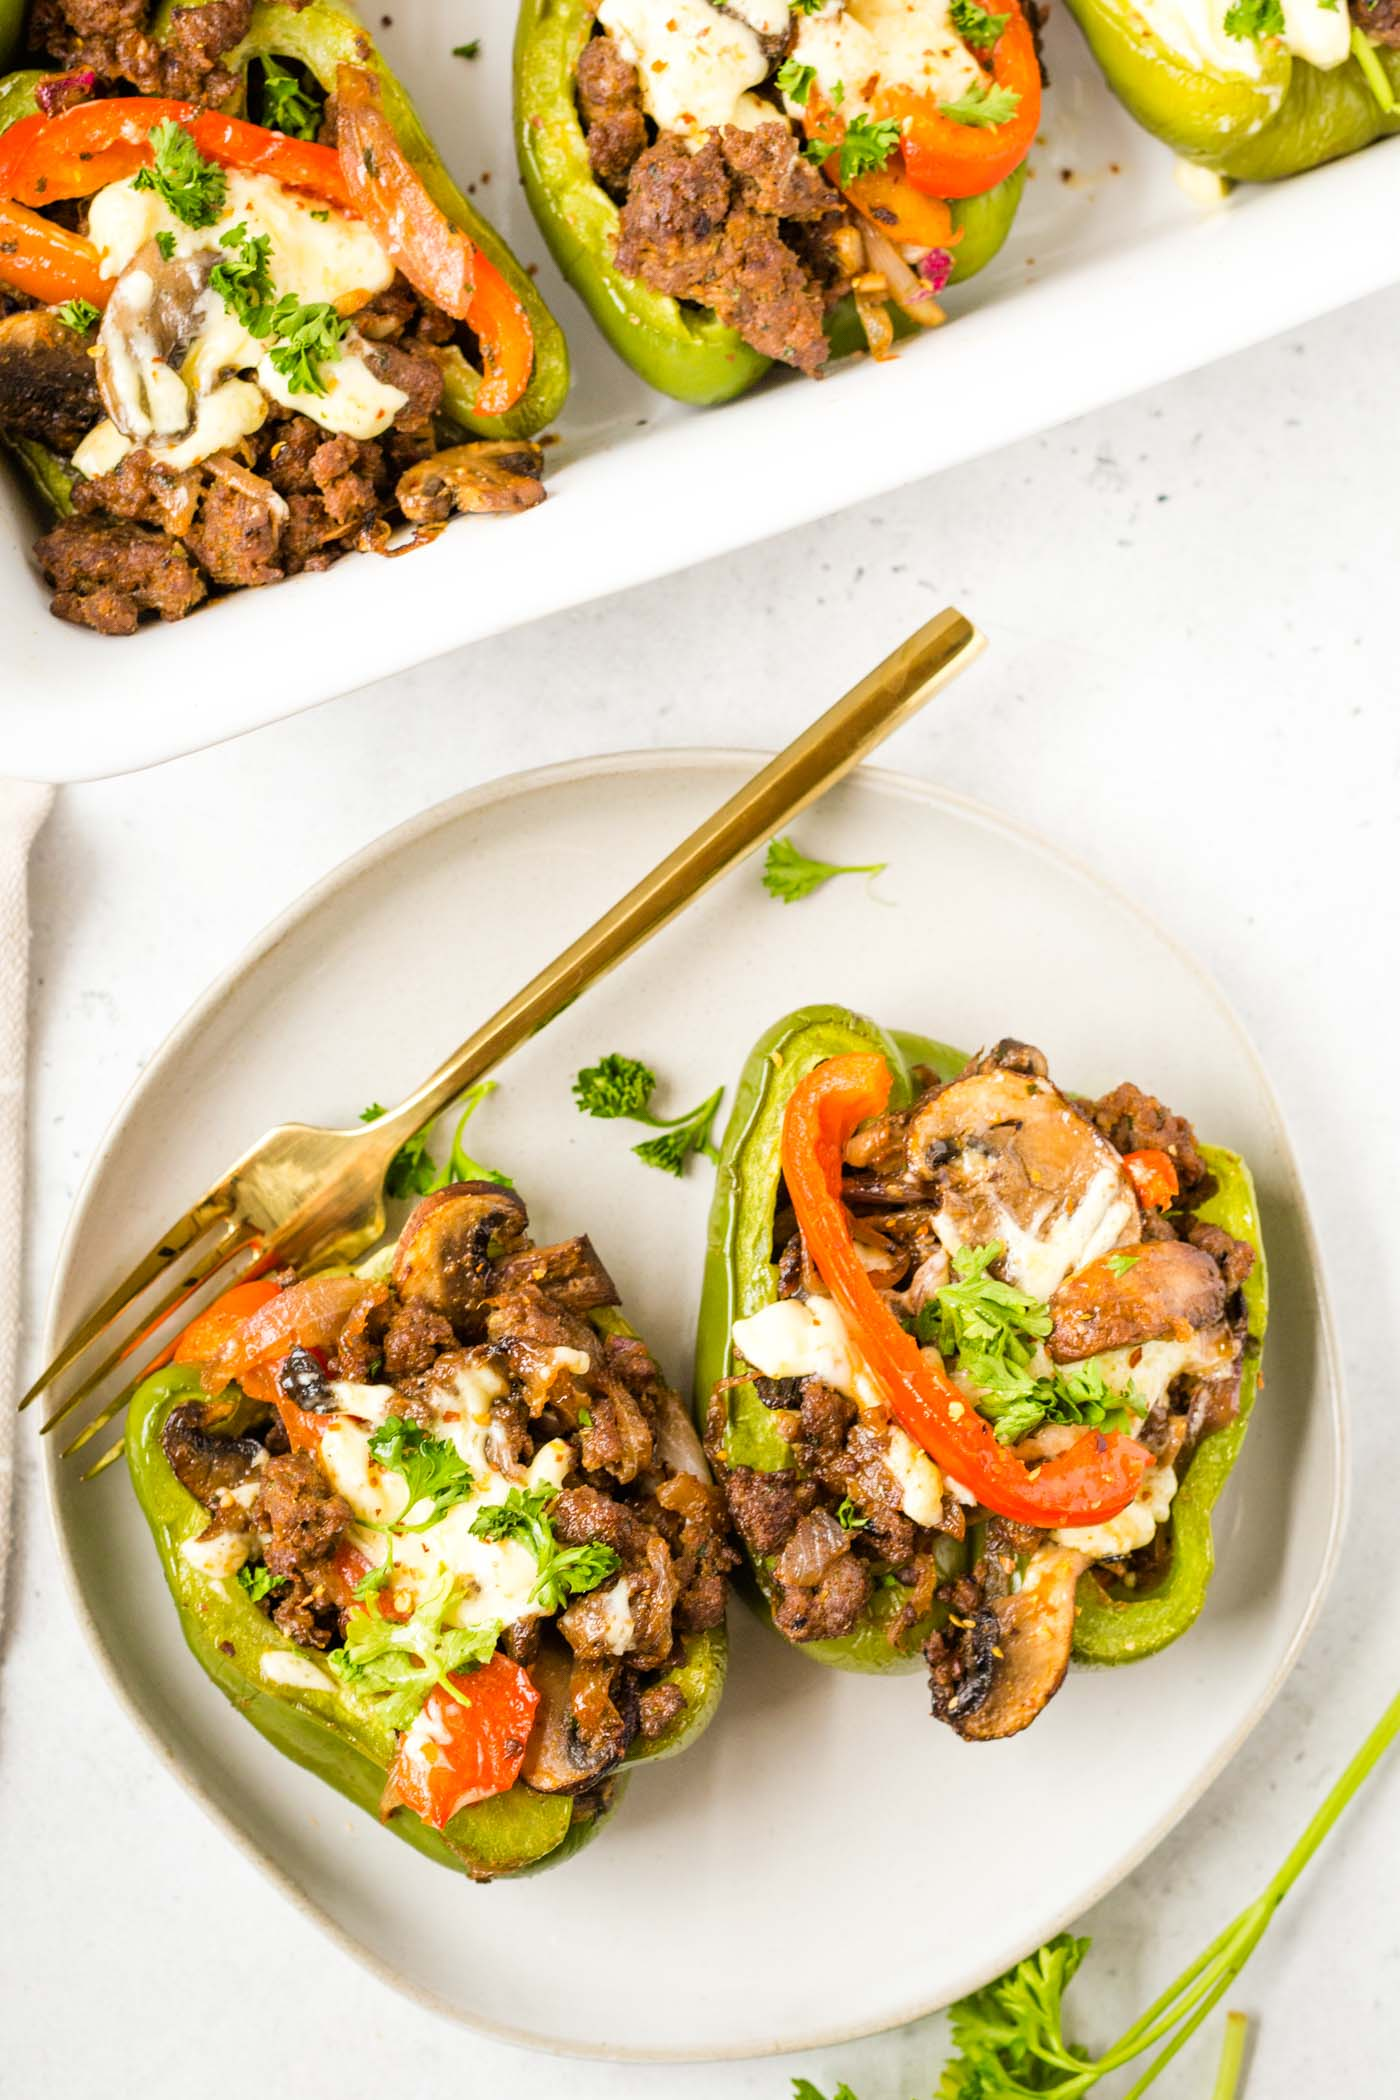 Two green philly stuffed peppers on plate with gold fork